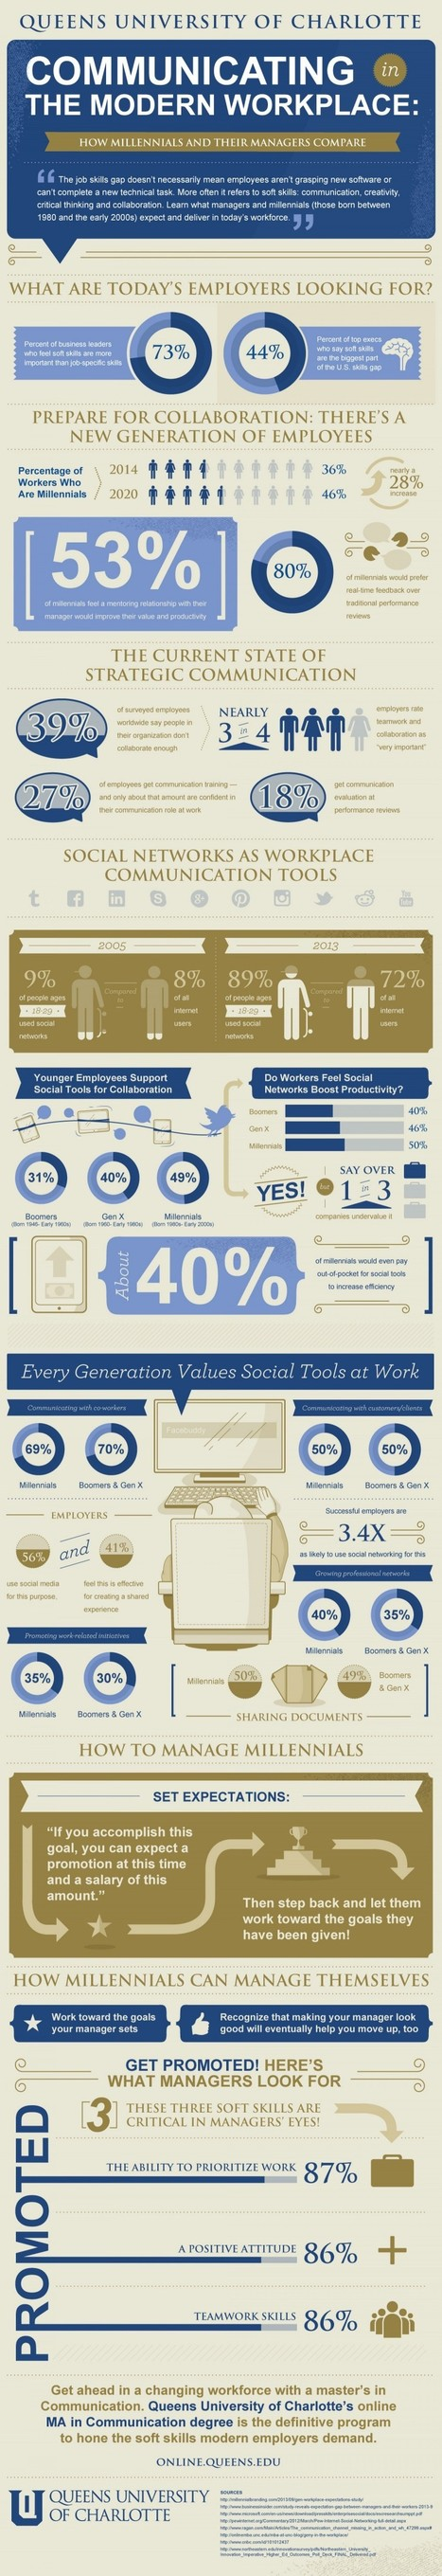 Millennials in the Modern Workplace Infographic - e-Learning Feeds | Aprendiendo a Distancia | Scoop.it